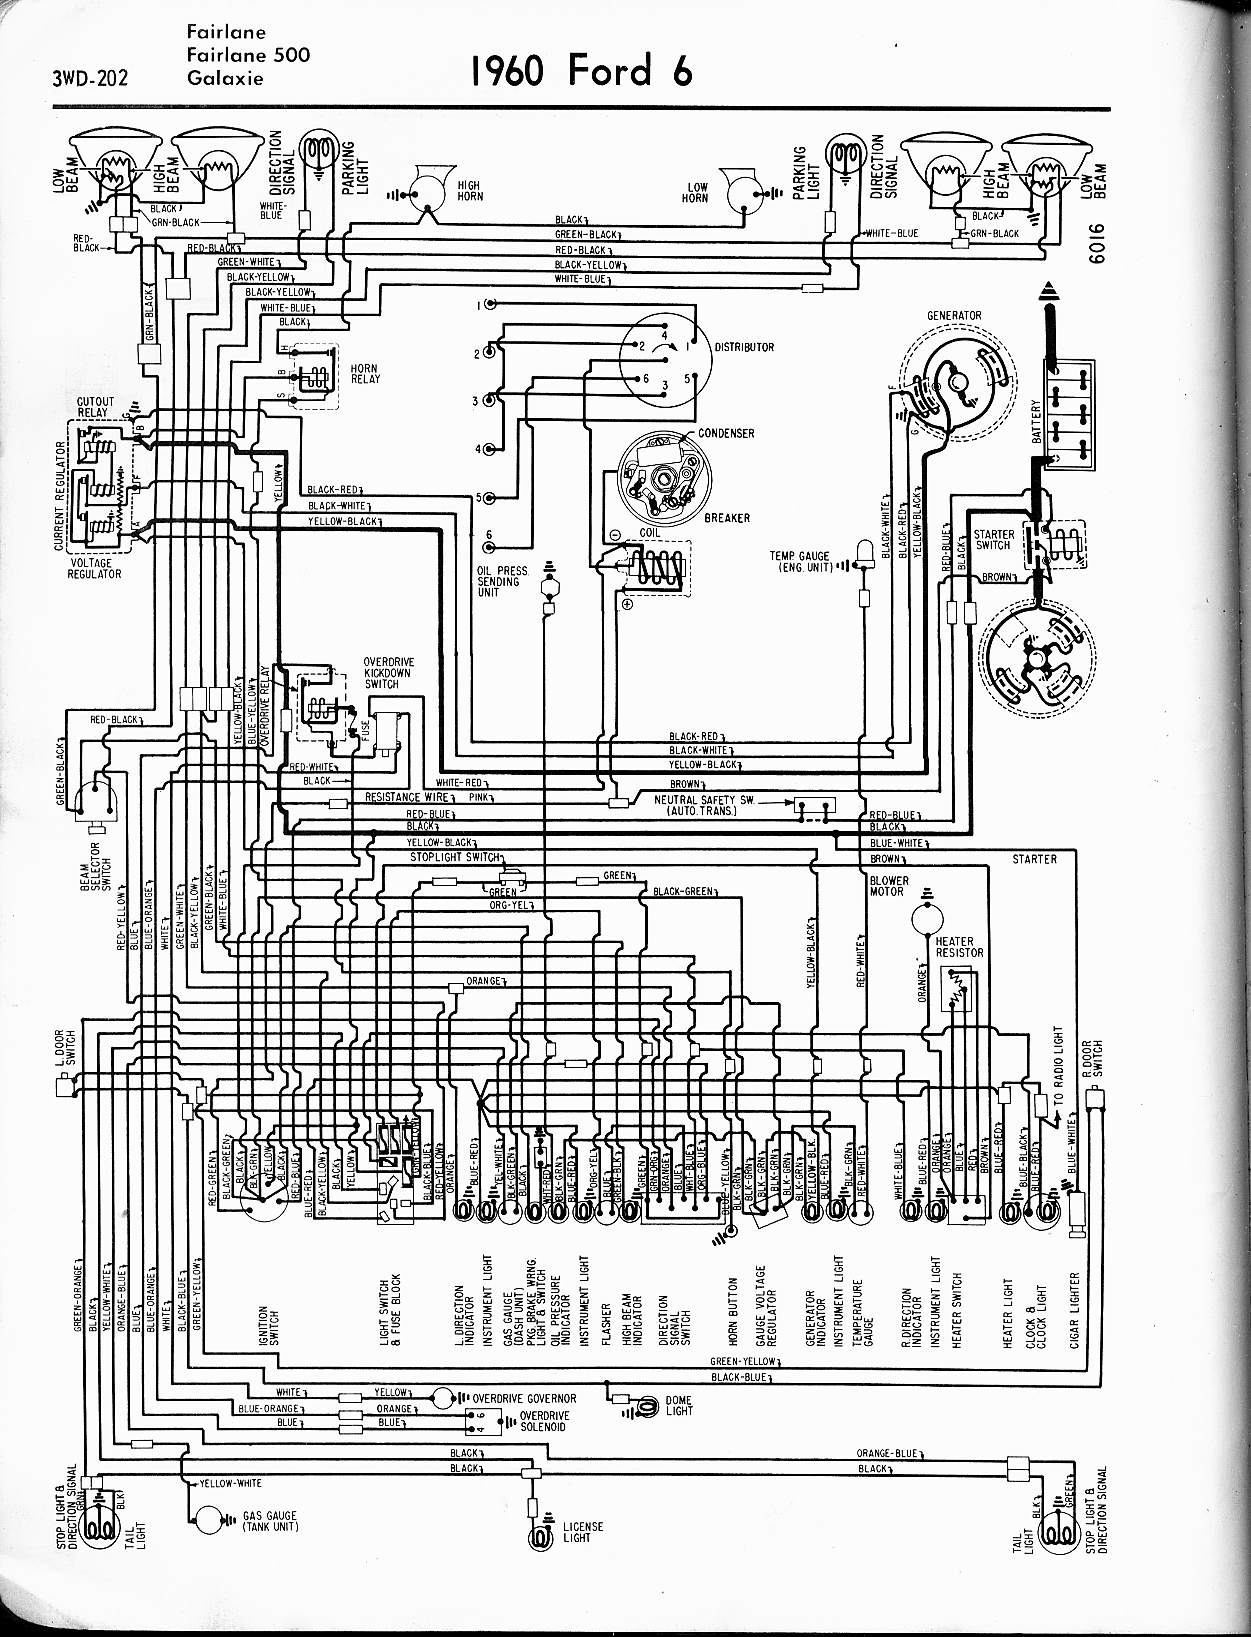 [SCHEMATICS_4CA]  9C578D 1966 Ford F100 Engine Manual | Wiring Library | 1966 Ford F100 Blinker Switch Wiring |  | Wiring Library